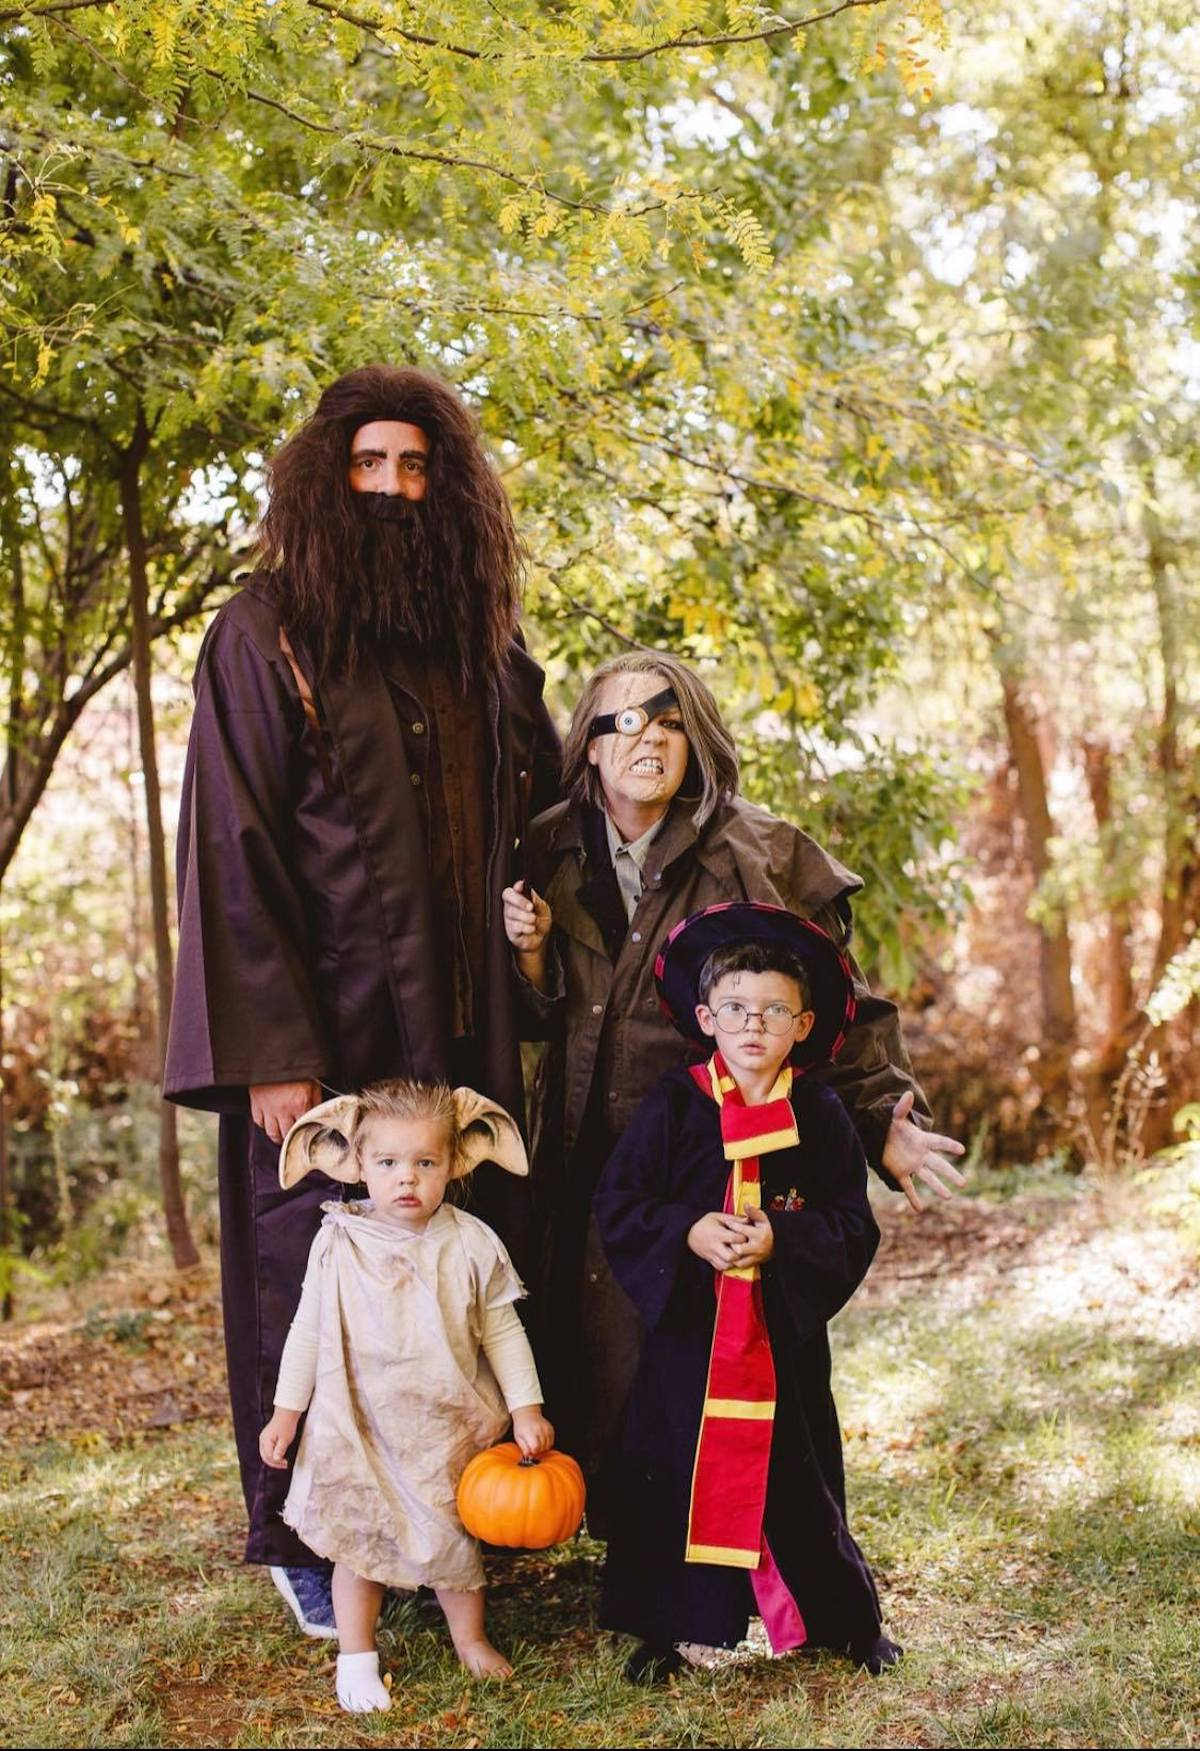 Family wearing Harry Potter costumes poses in front of trees.